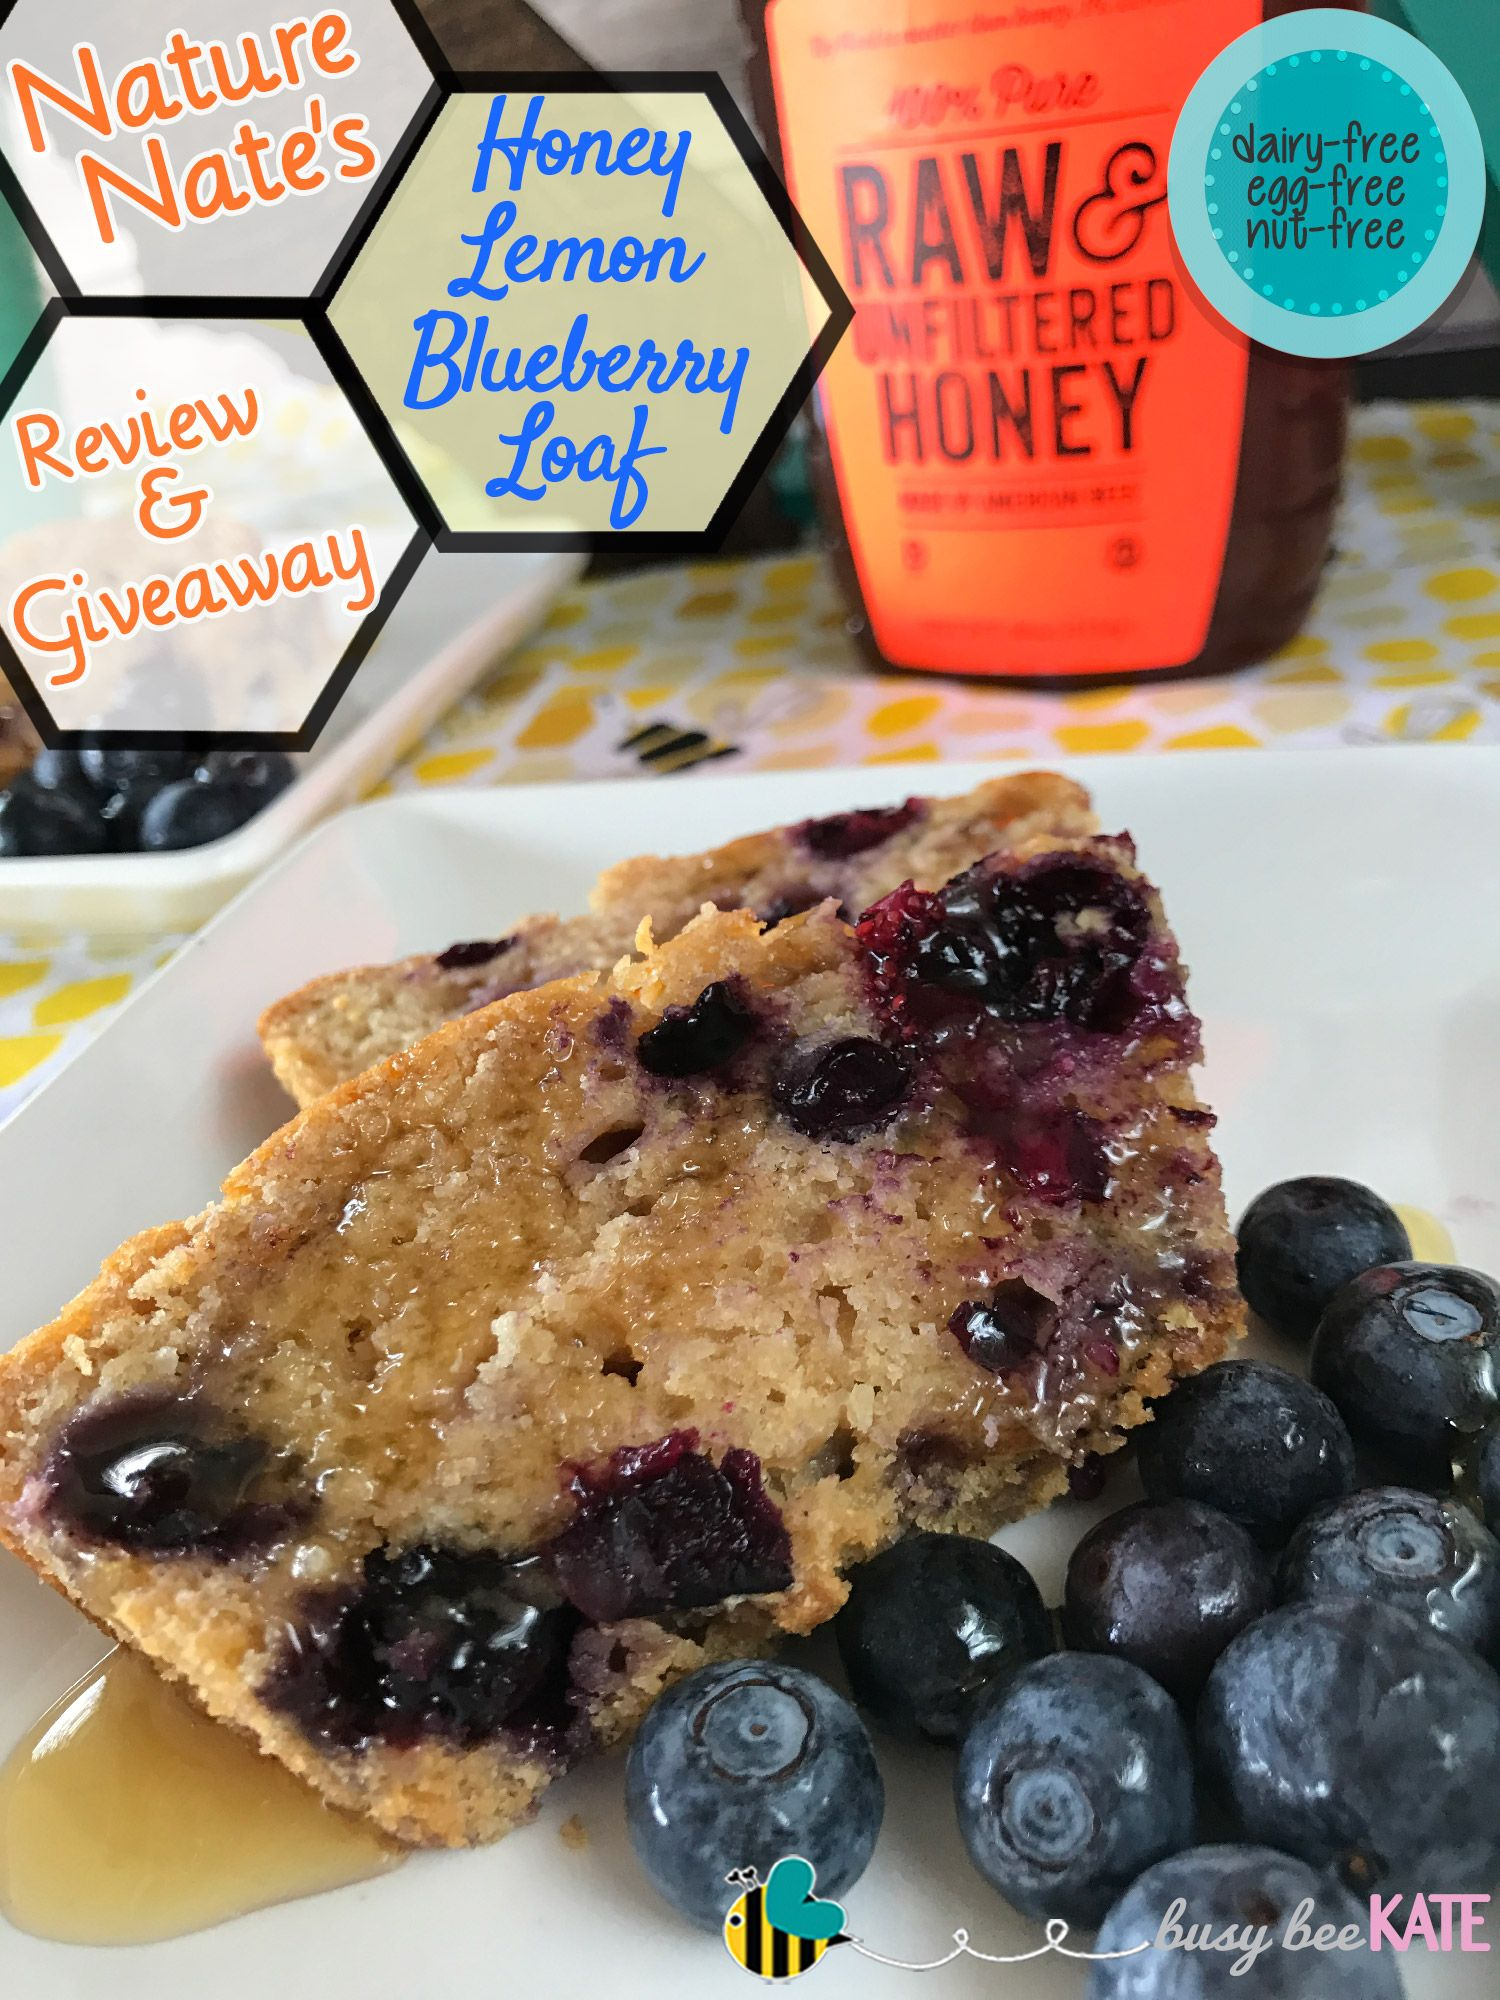 Busy Bee Kate | Nature Nate's Honey - Review, Giveaway & Recipe for Honey Lemon Blueberry Loaf